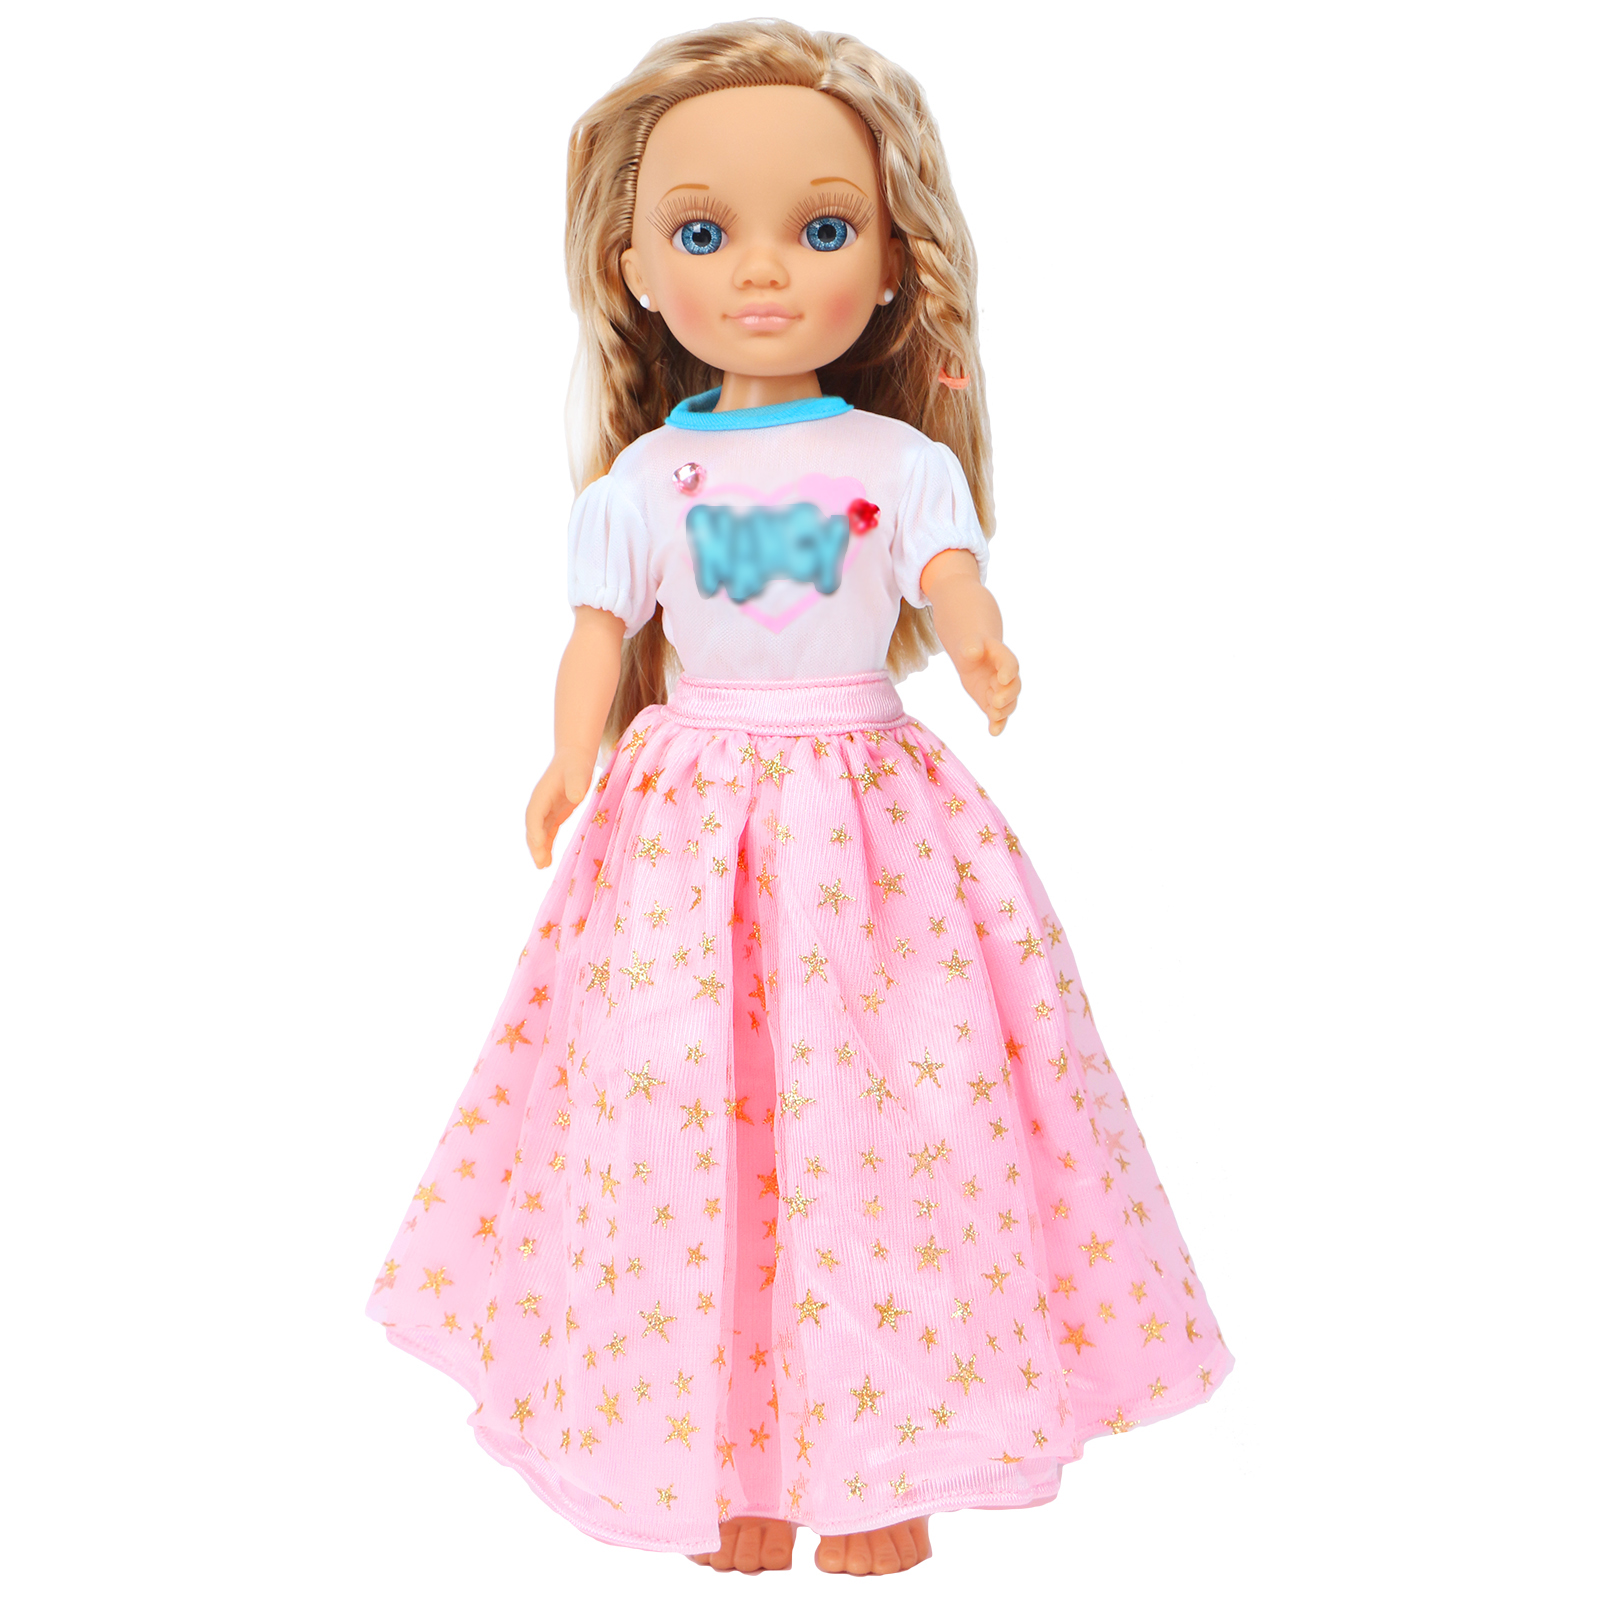 High Quality Wedding Party Wear Dress Princess Blouse + Lace Pink Skirt Gown Clothes For Nancy Doll Accessories Xmas Kids Toy